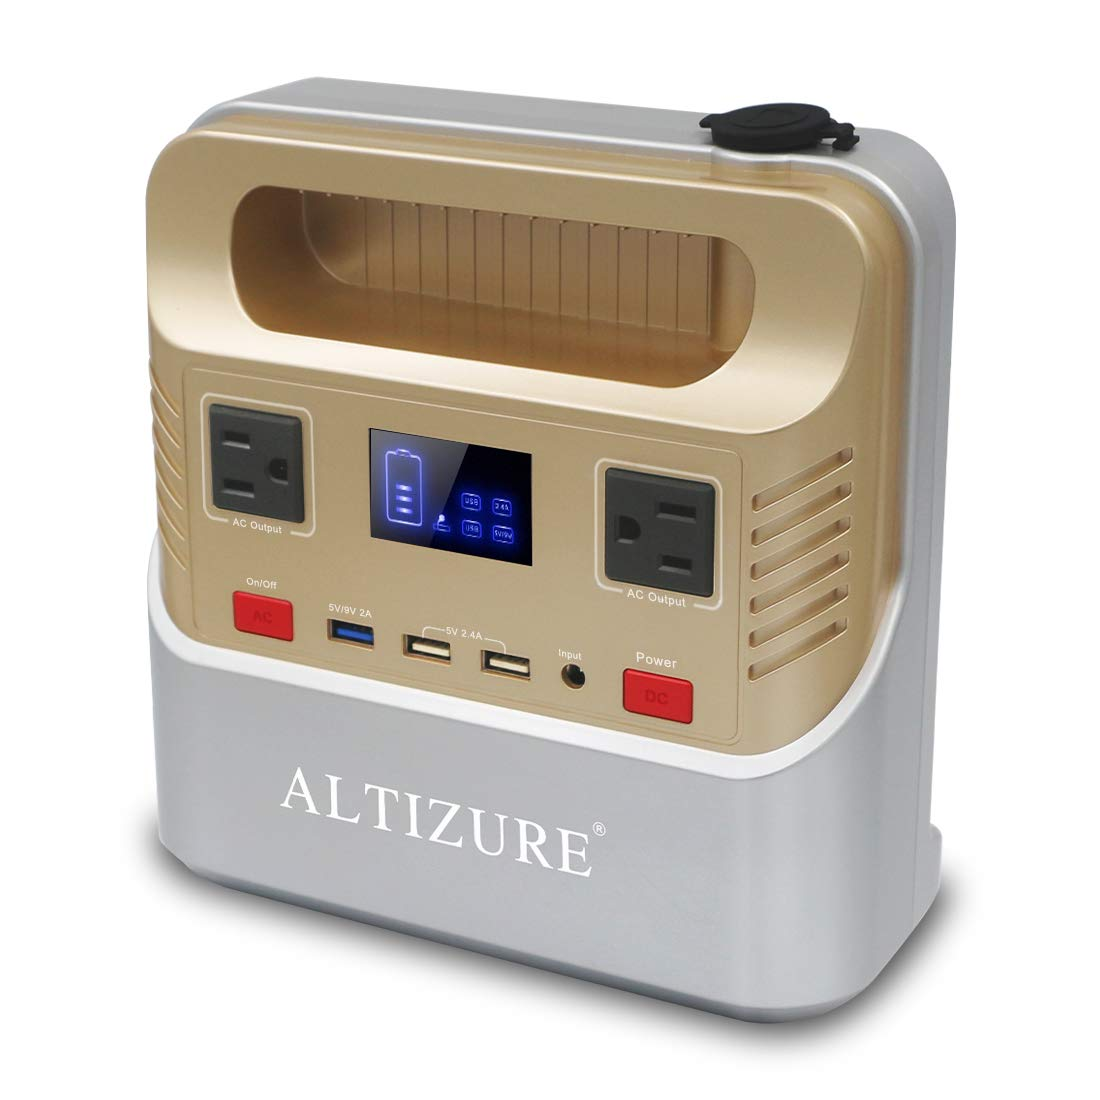 ALTIZURE Portable Power Station Portable Generator Solar Generator 300W 76000mAh 266Wh Pure Sine Wave CPAP Home Use Outdoor Camping Disaster Prevention Emergency,with AC USB QC3.0,LED Light,SOS Flash